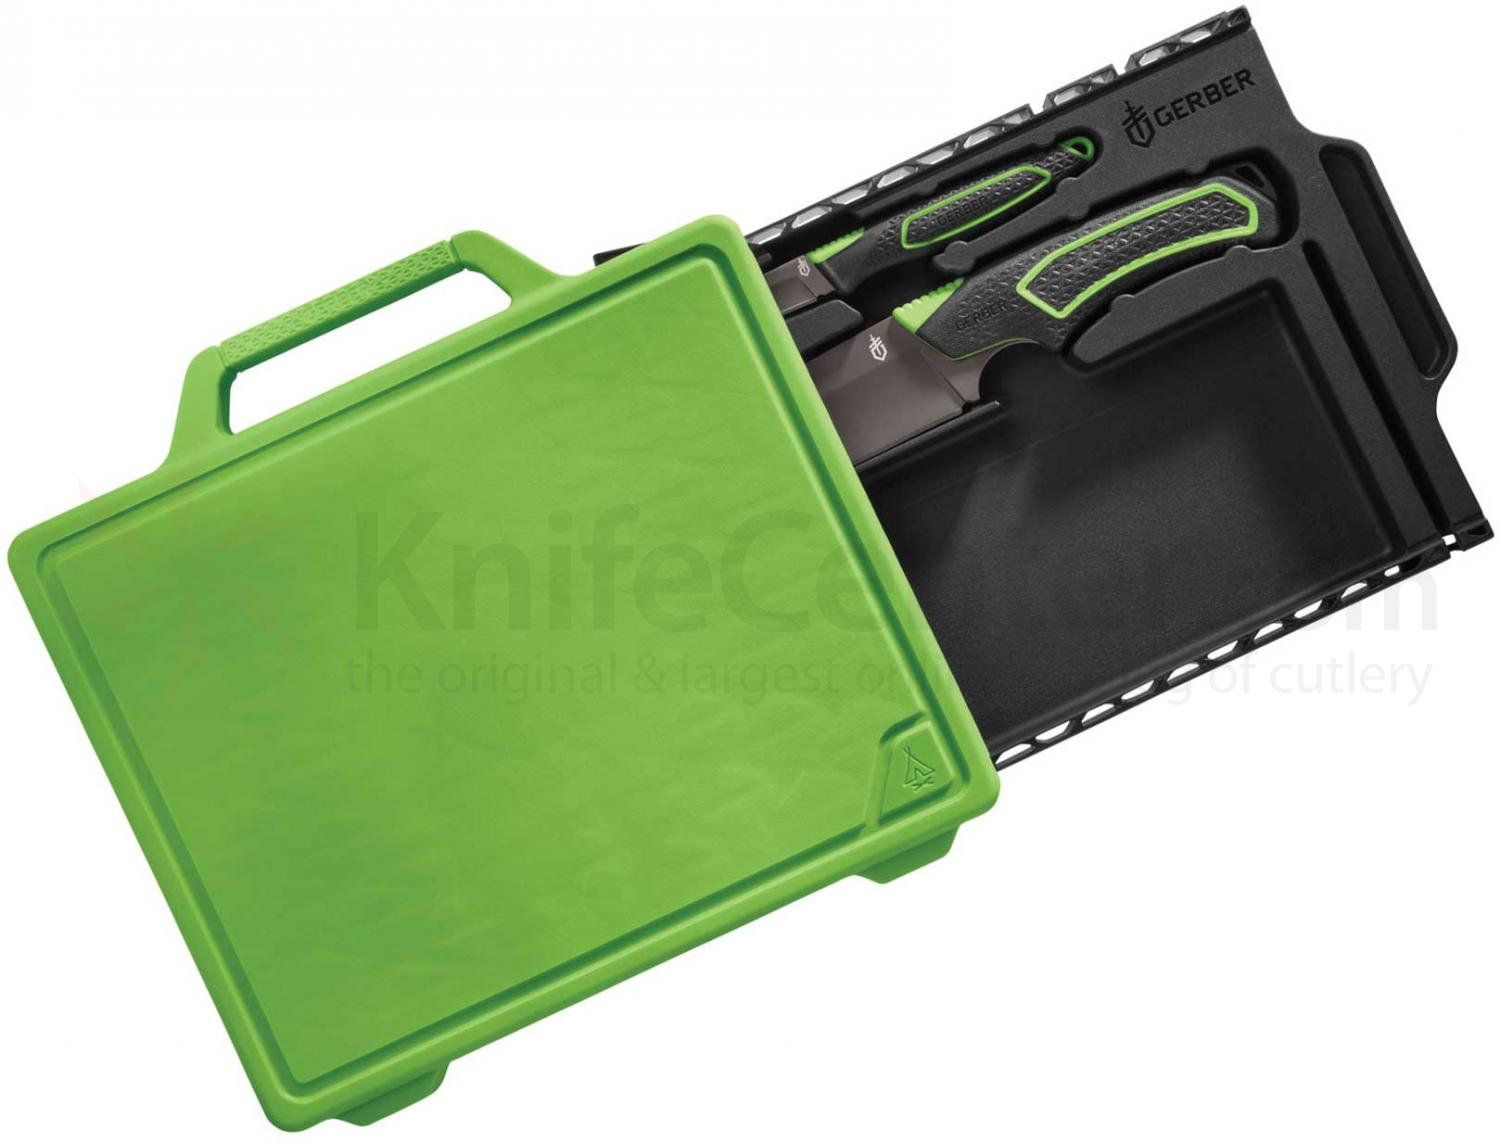 Gerber Freescape Camp Kitchen Set With Carrying Case